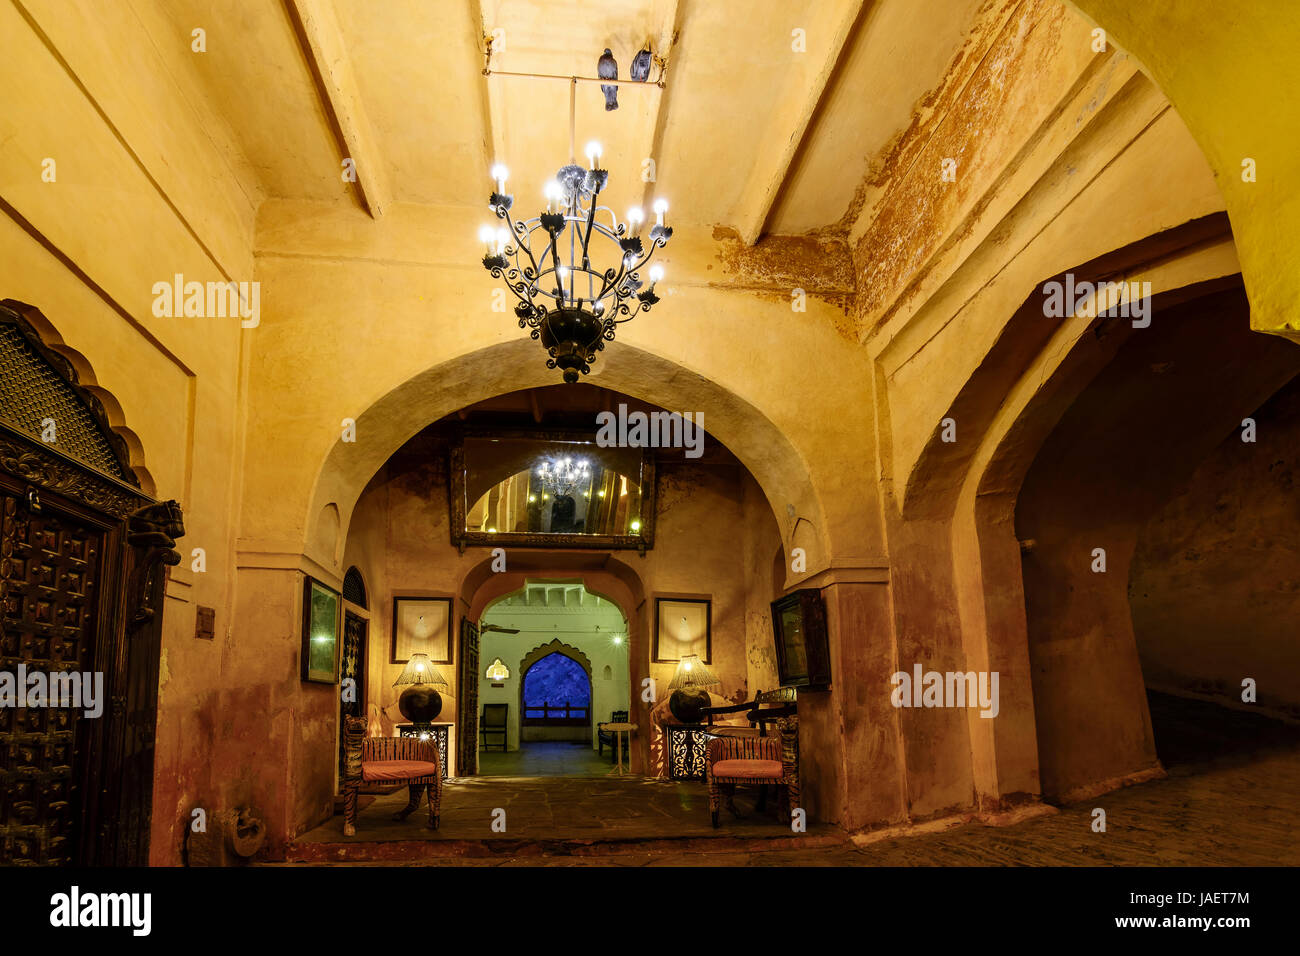 The ostentatious interiors of a historic Rajputana castle in Rajasthan, India - Stock Image